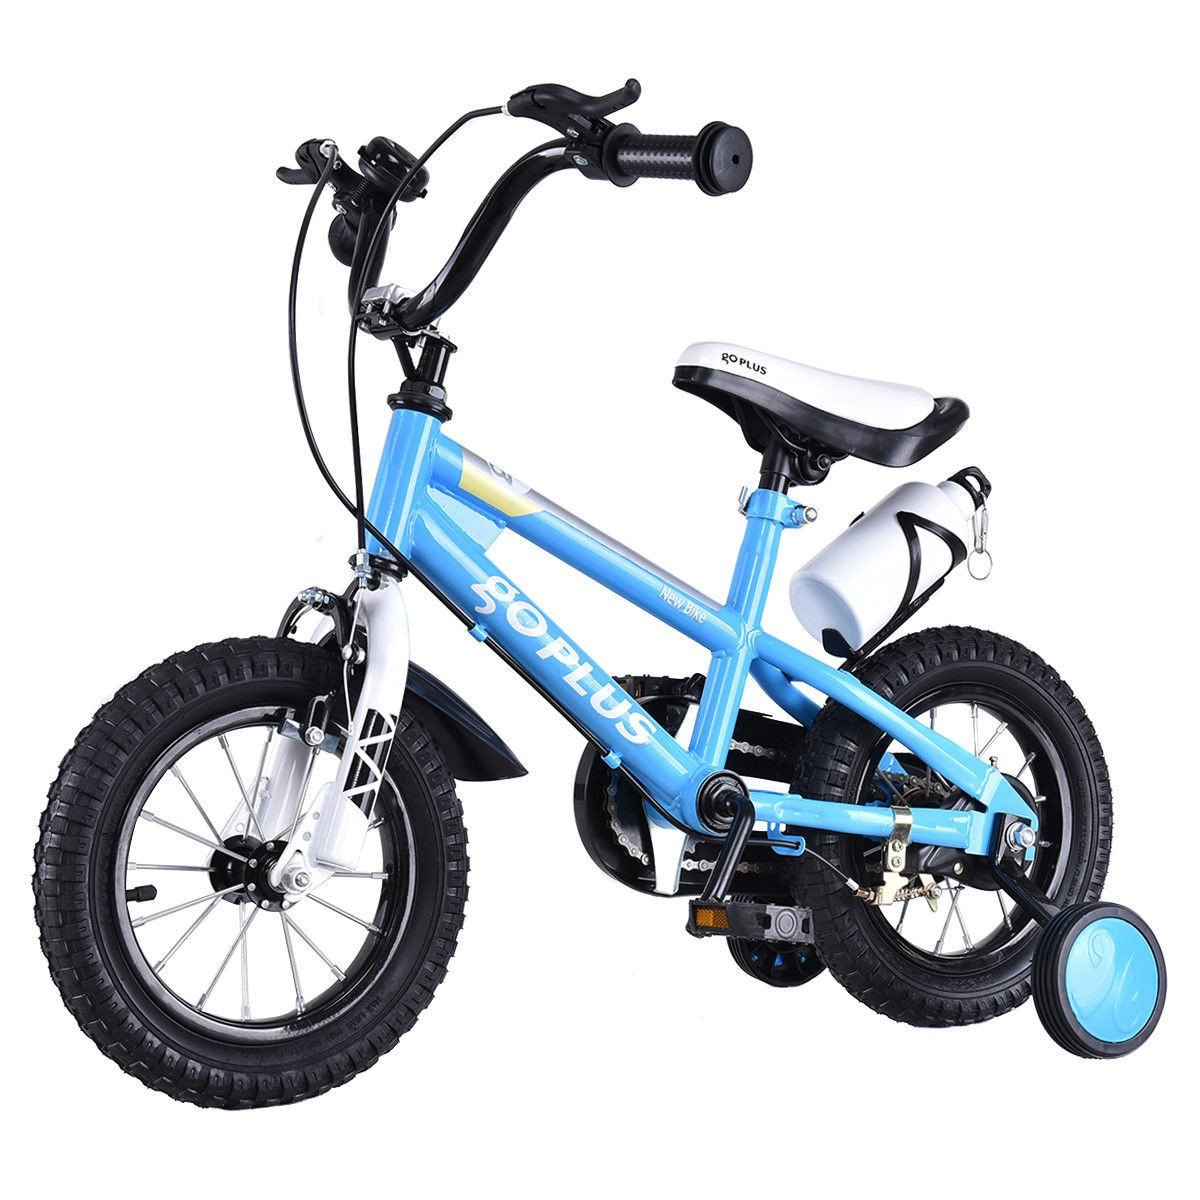 MD Group Kids Bicycle 20'' Adjustable Freestyle Boys & Girls Blue Metal w/ Training Wheels by MD Group (Image #1)